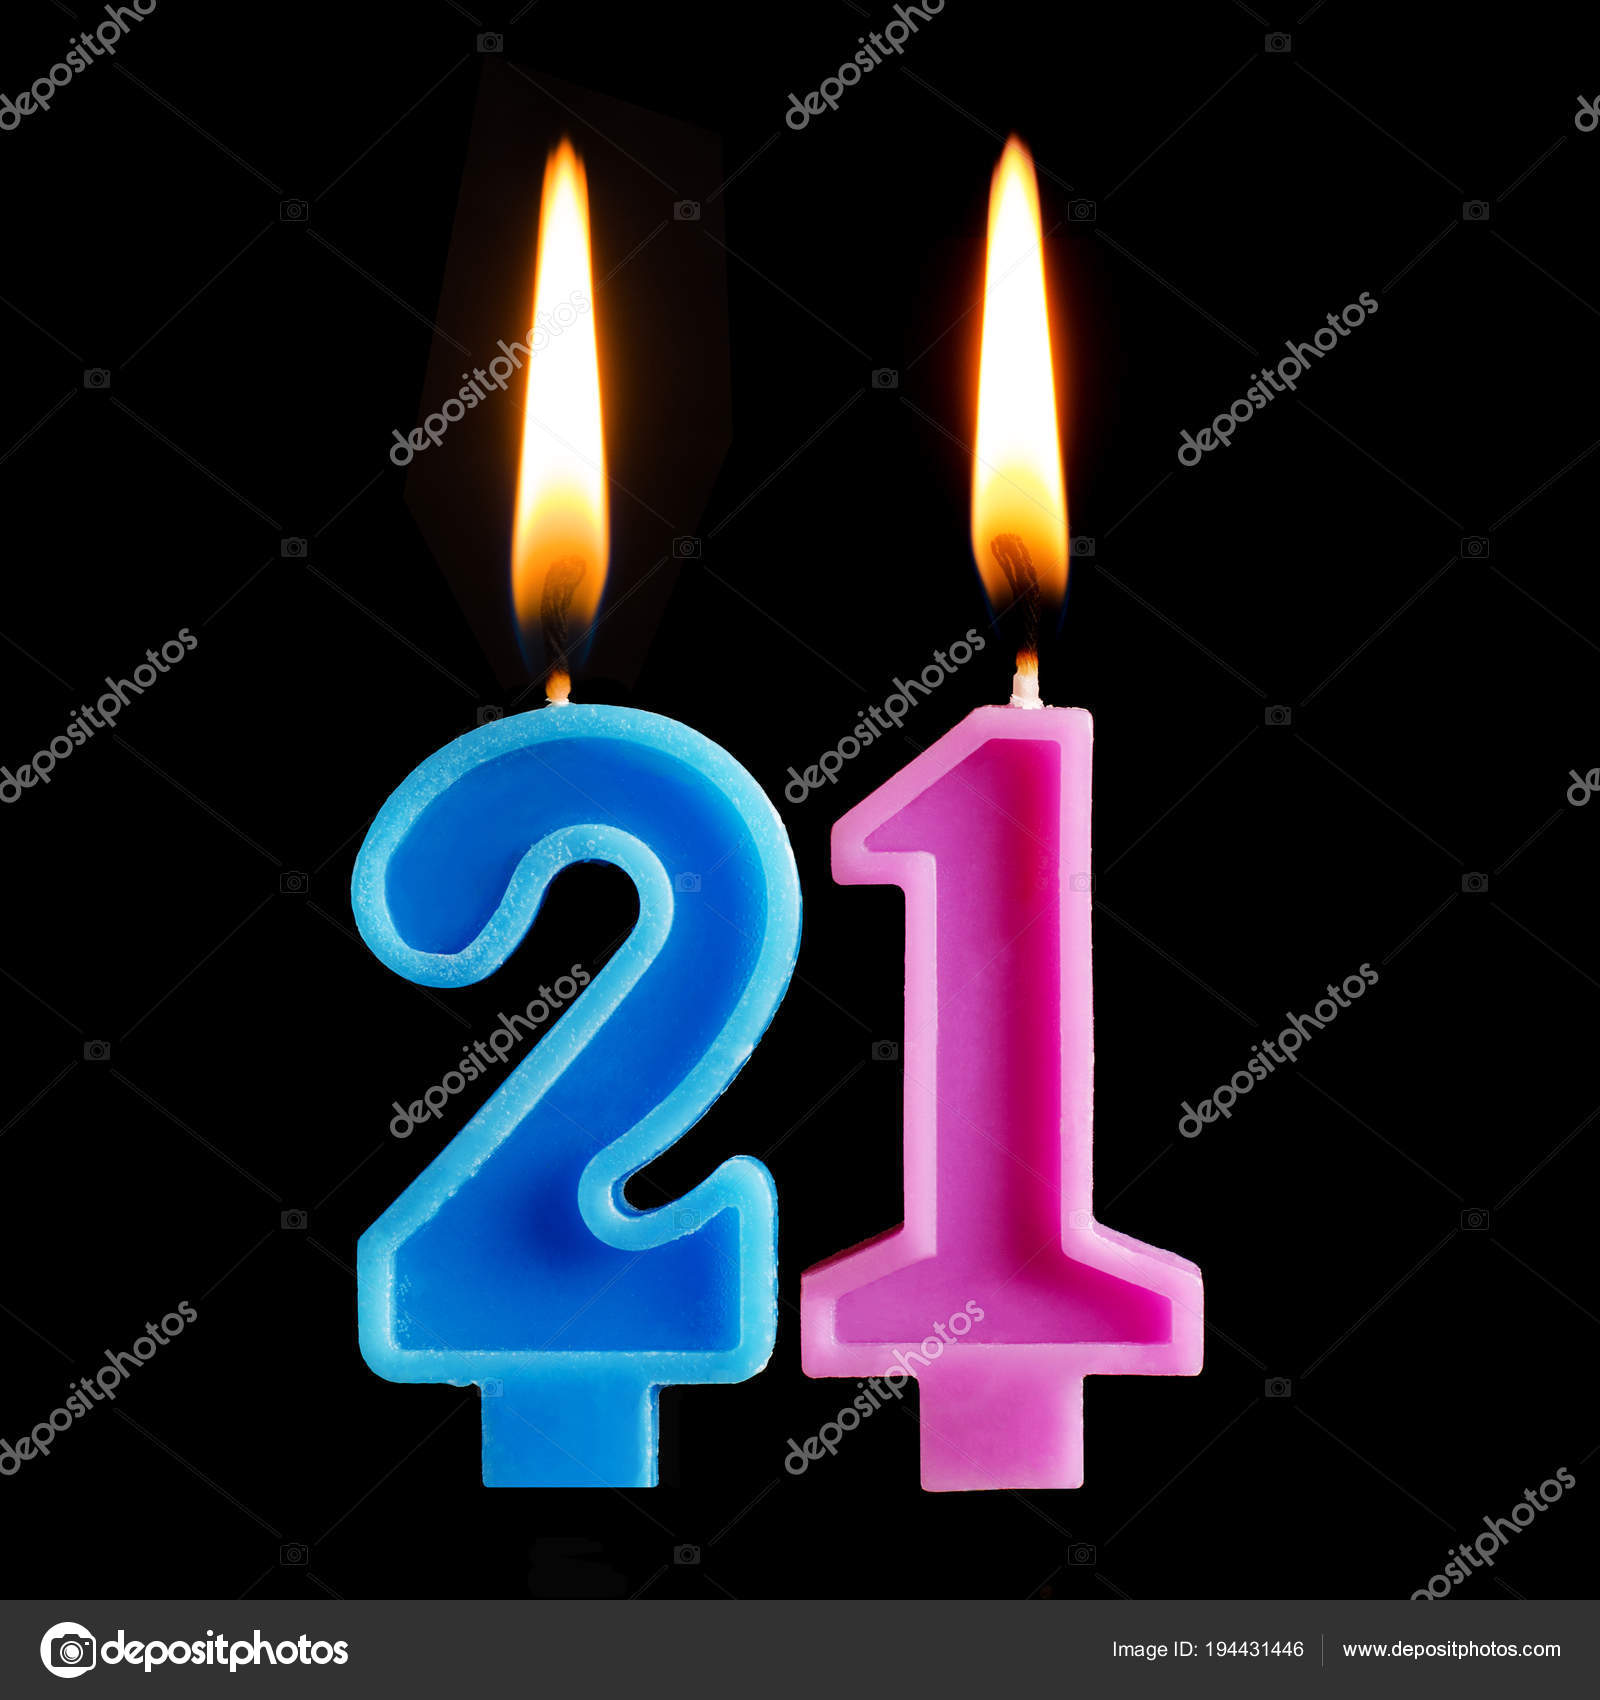 Burning Birthday Candles In The Form Of 21 Twenty One For Cake Isolated On Black Background Concept Celebrating A Anniversary